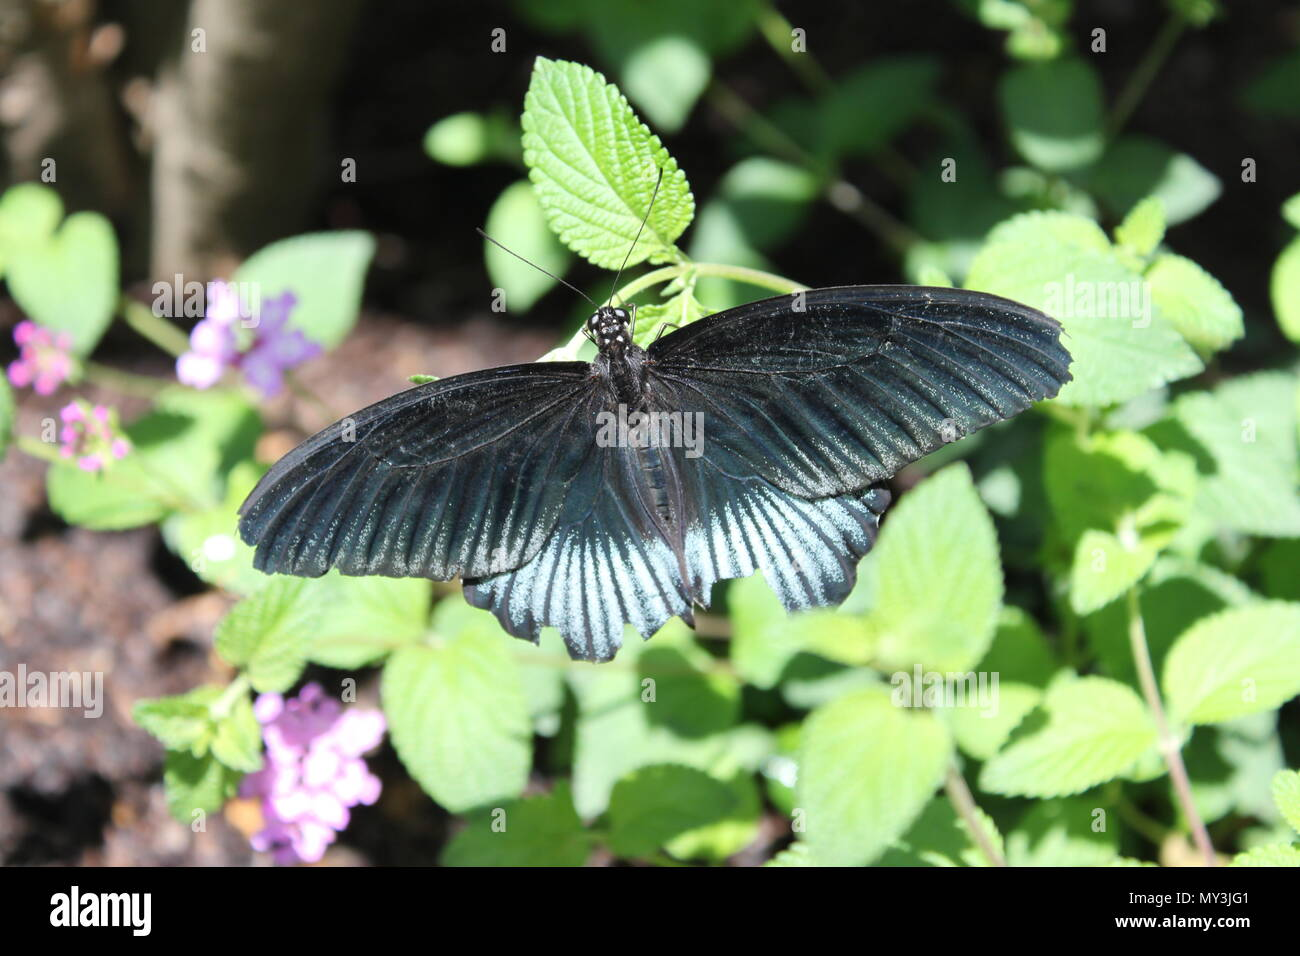 Beautiful blue and black Pipevine Swallowtail (Battus philenor), a lepidoptera native to North America; larvae feed on plants of genus Aristolochia. Stock Photo